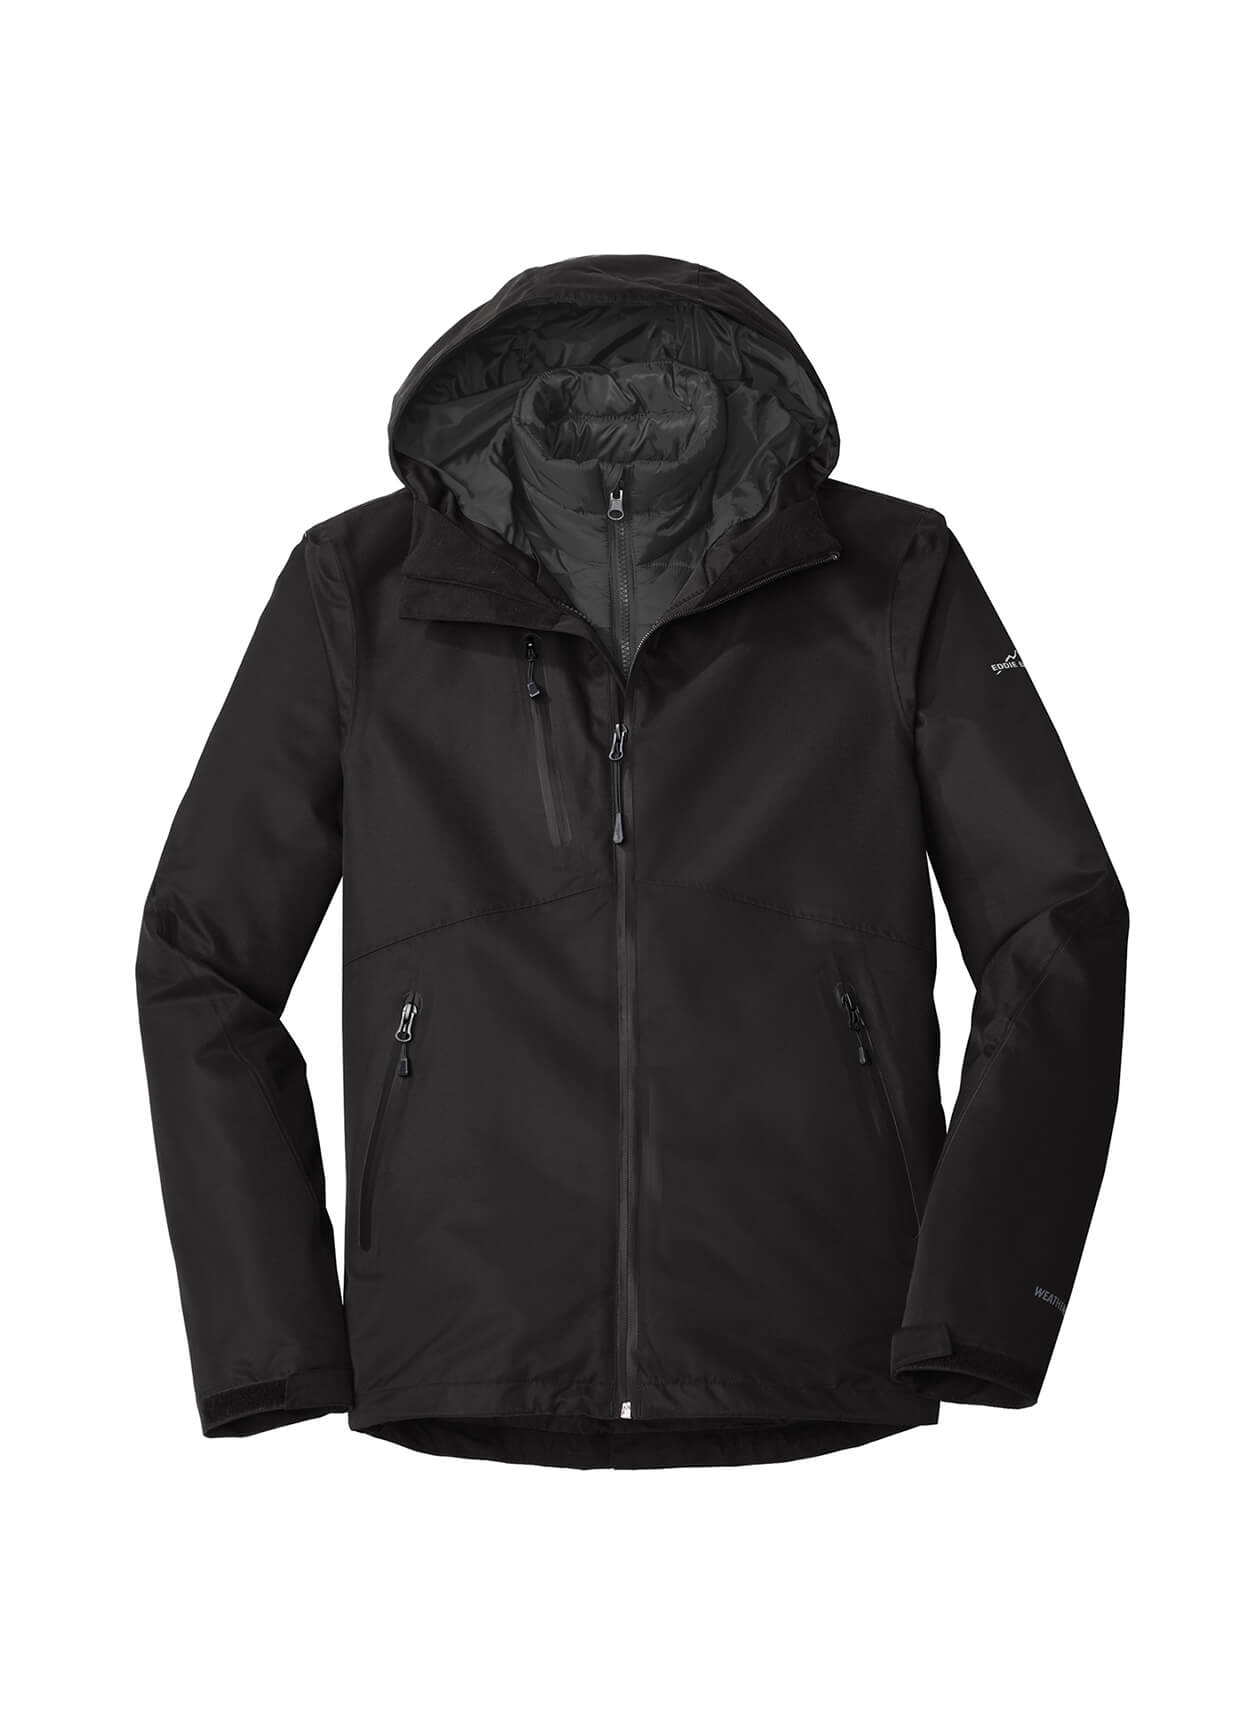 Eddie Bauer Men's WeatherEdge Plus 3-in-1 Jacket